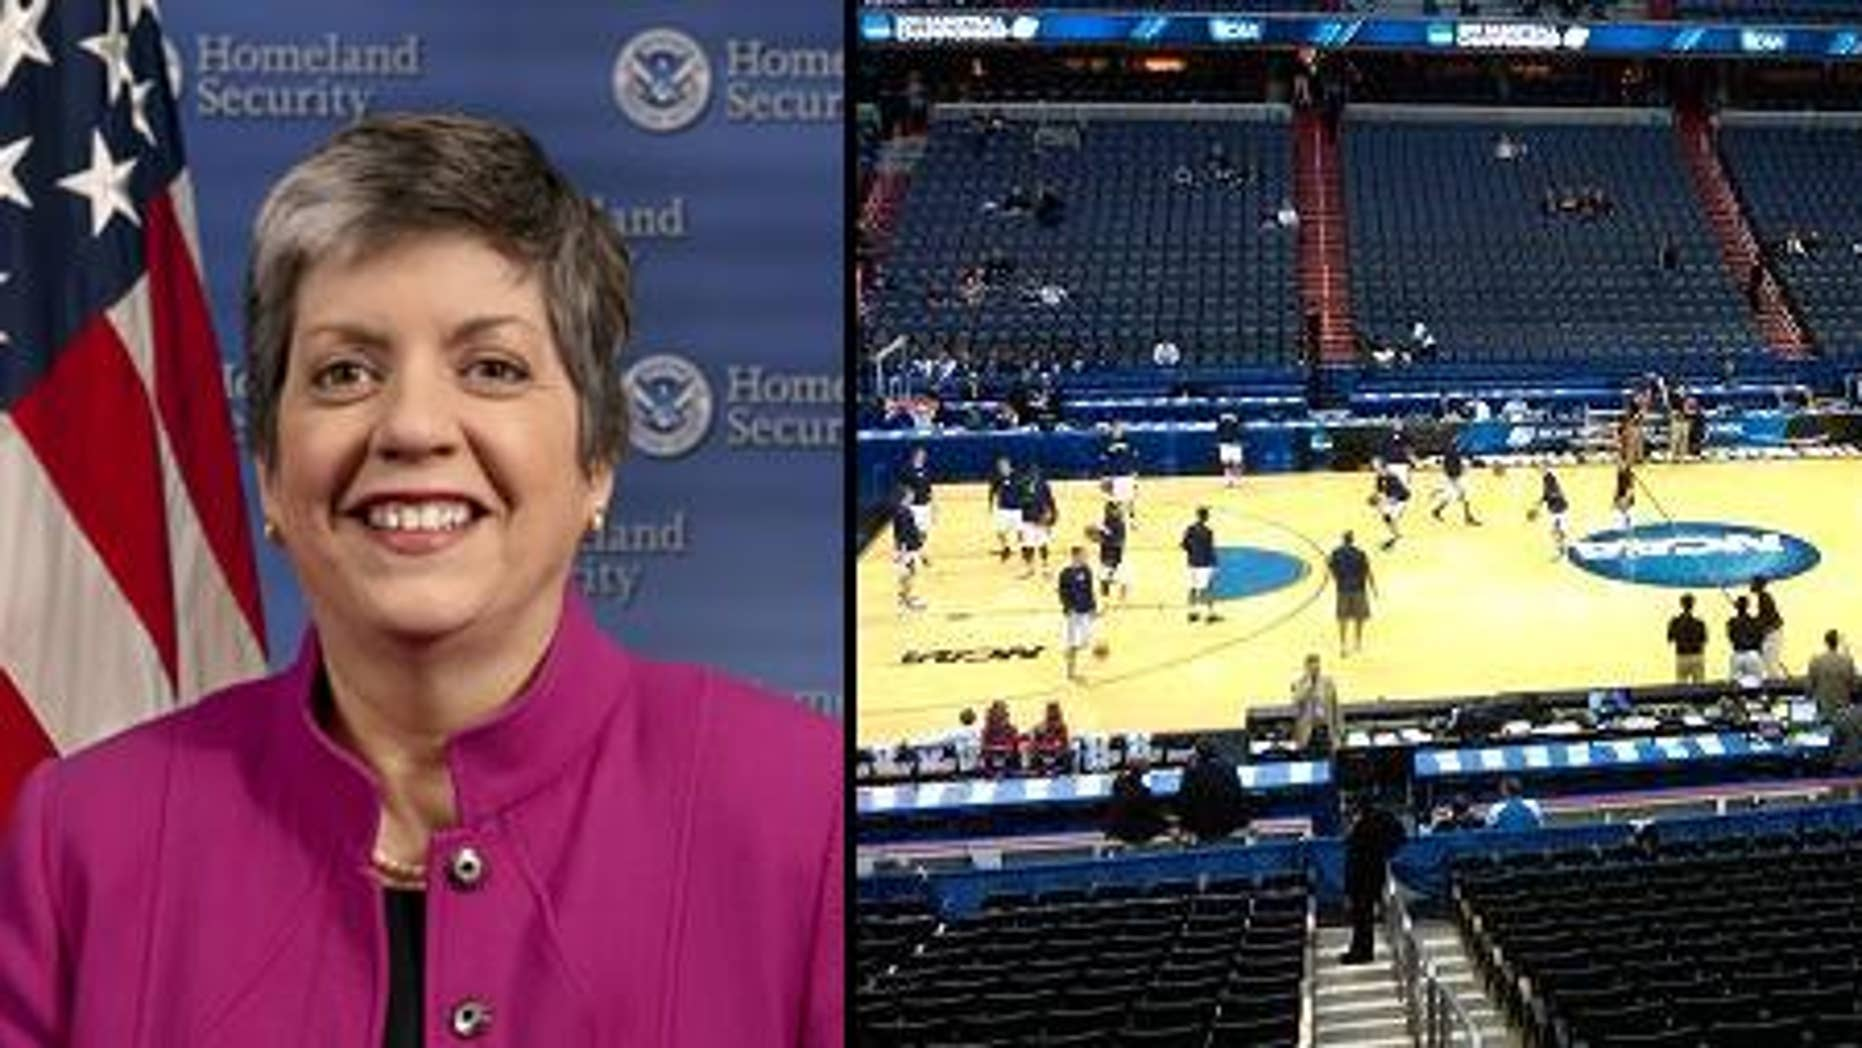 DHS Secretary Janet Napolitano // NCAA players pratice at DC's Verizon Center on March 17